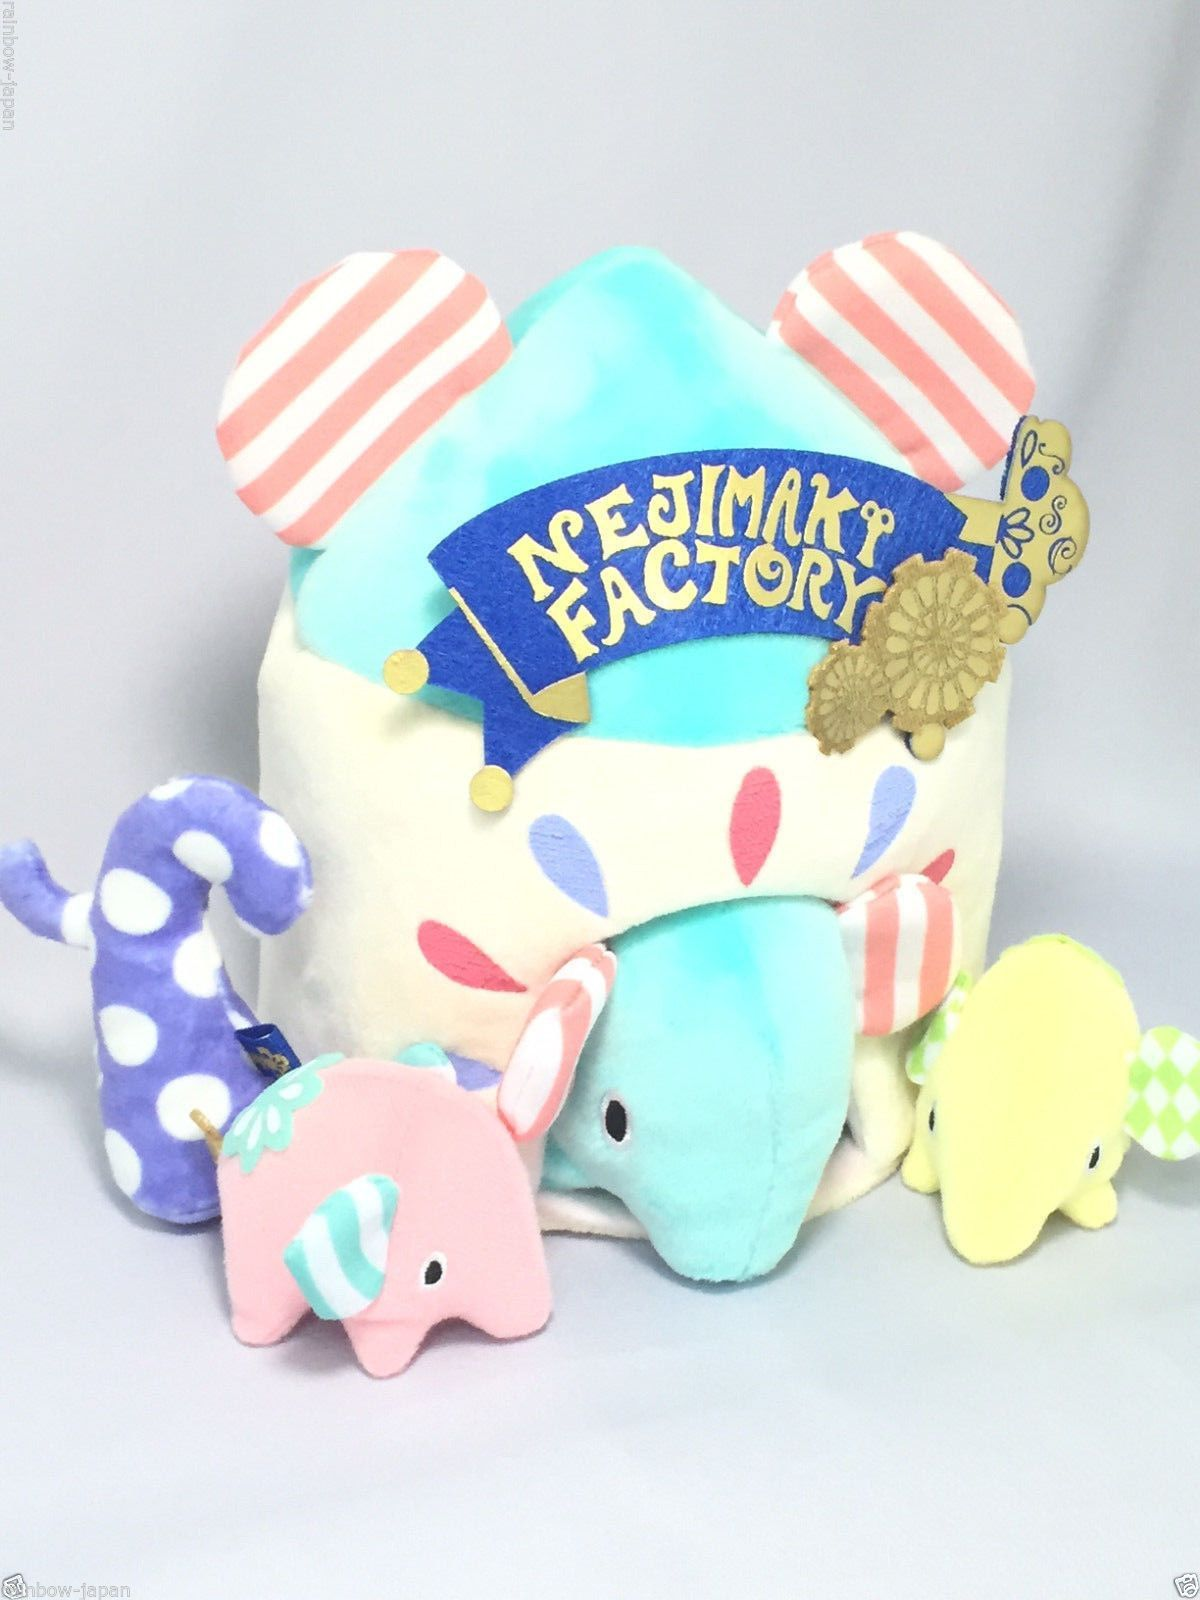 San-X Sentimental Circus Mouton Hometown Set Nejimaki Factory Plush Doll Kawaii